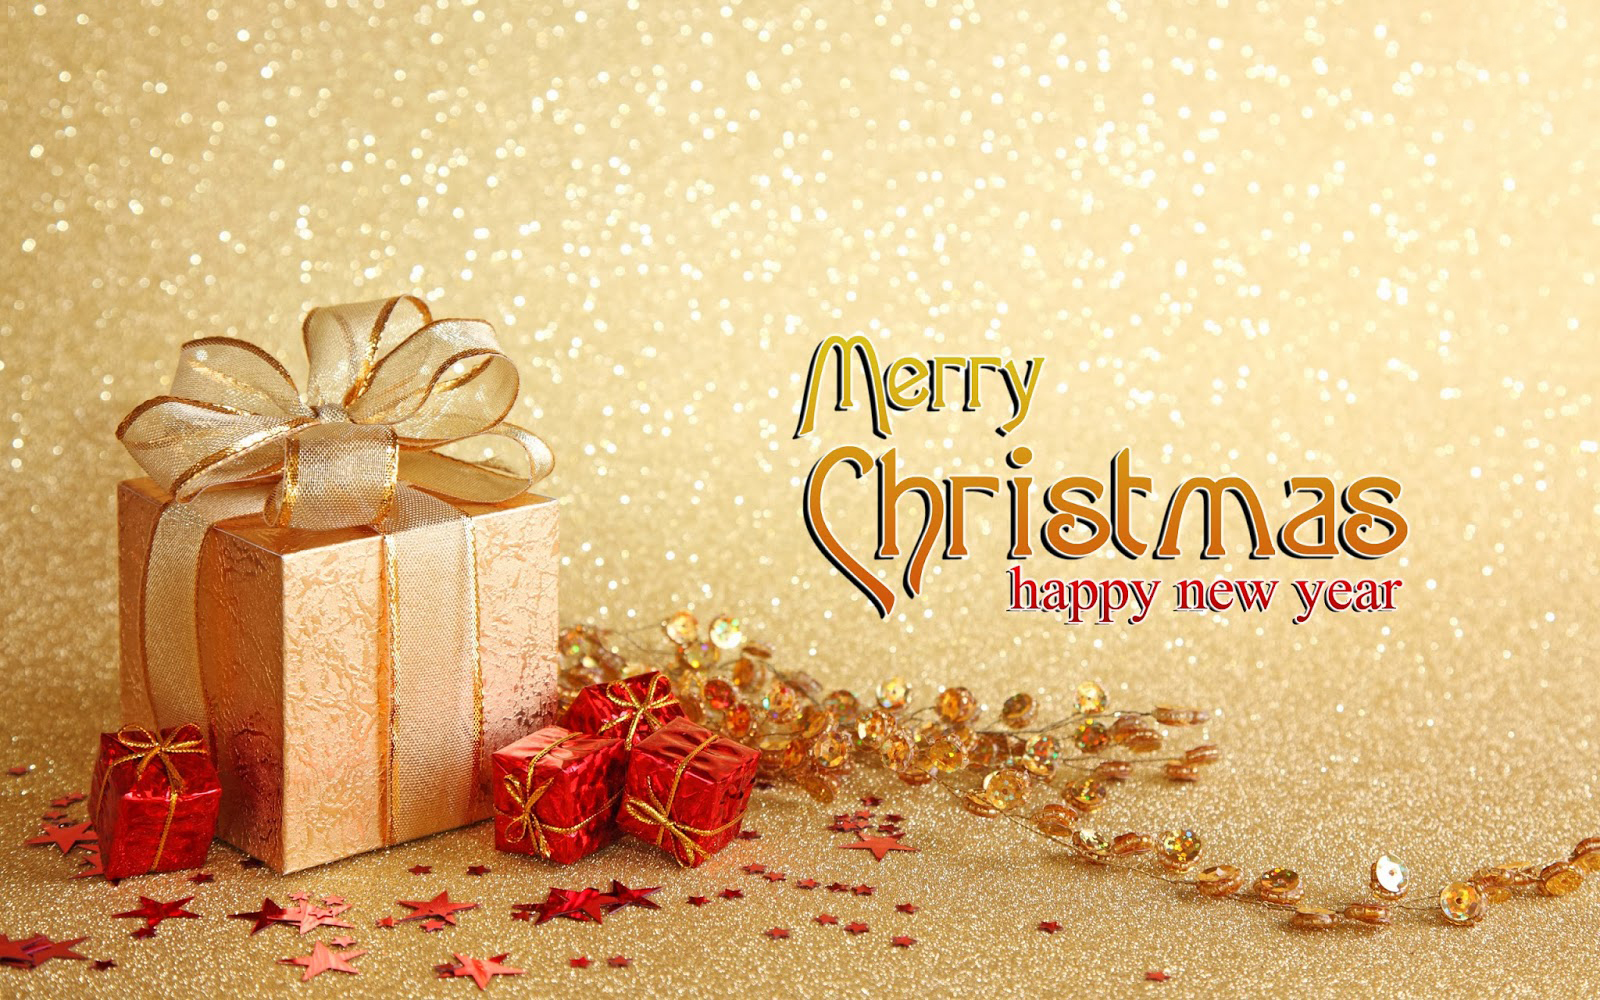 2019 year for women- Christmas Merry wishes text pictures